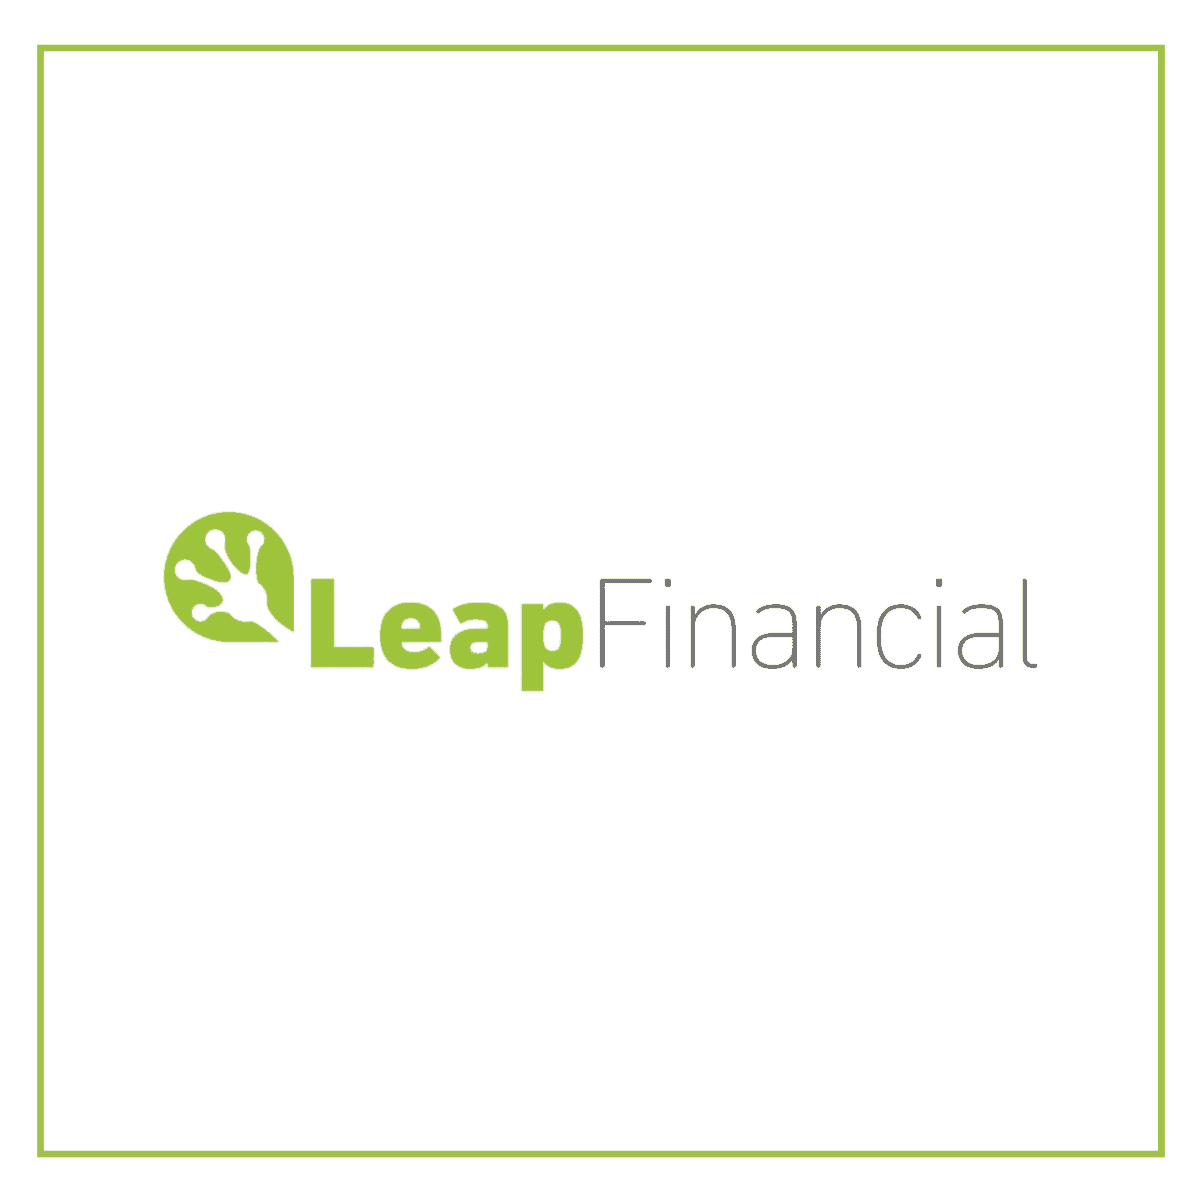 Leap Financial ⎯ Helping Consumers Take The Leap Into Financial Freedom